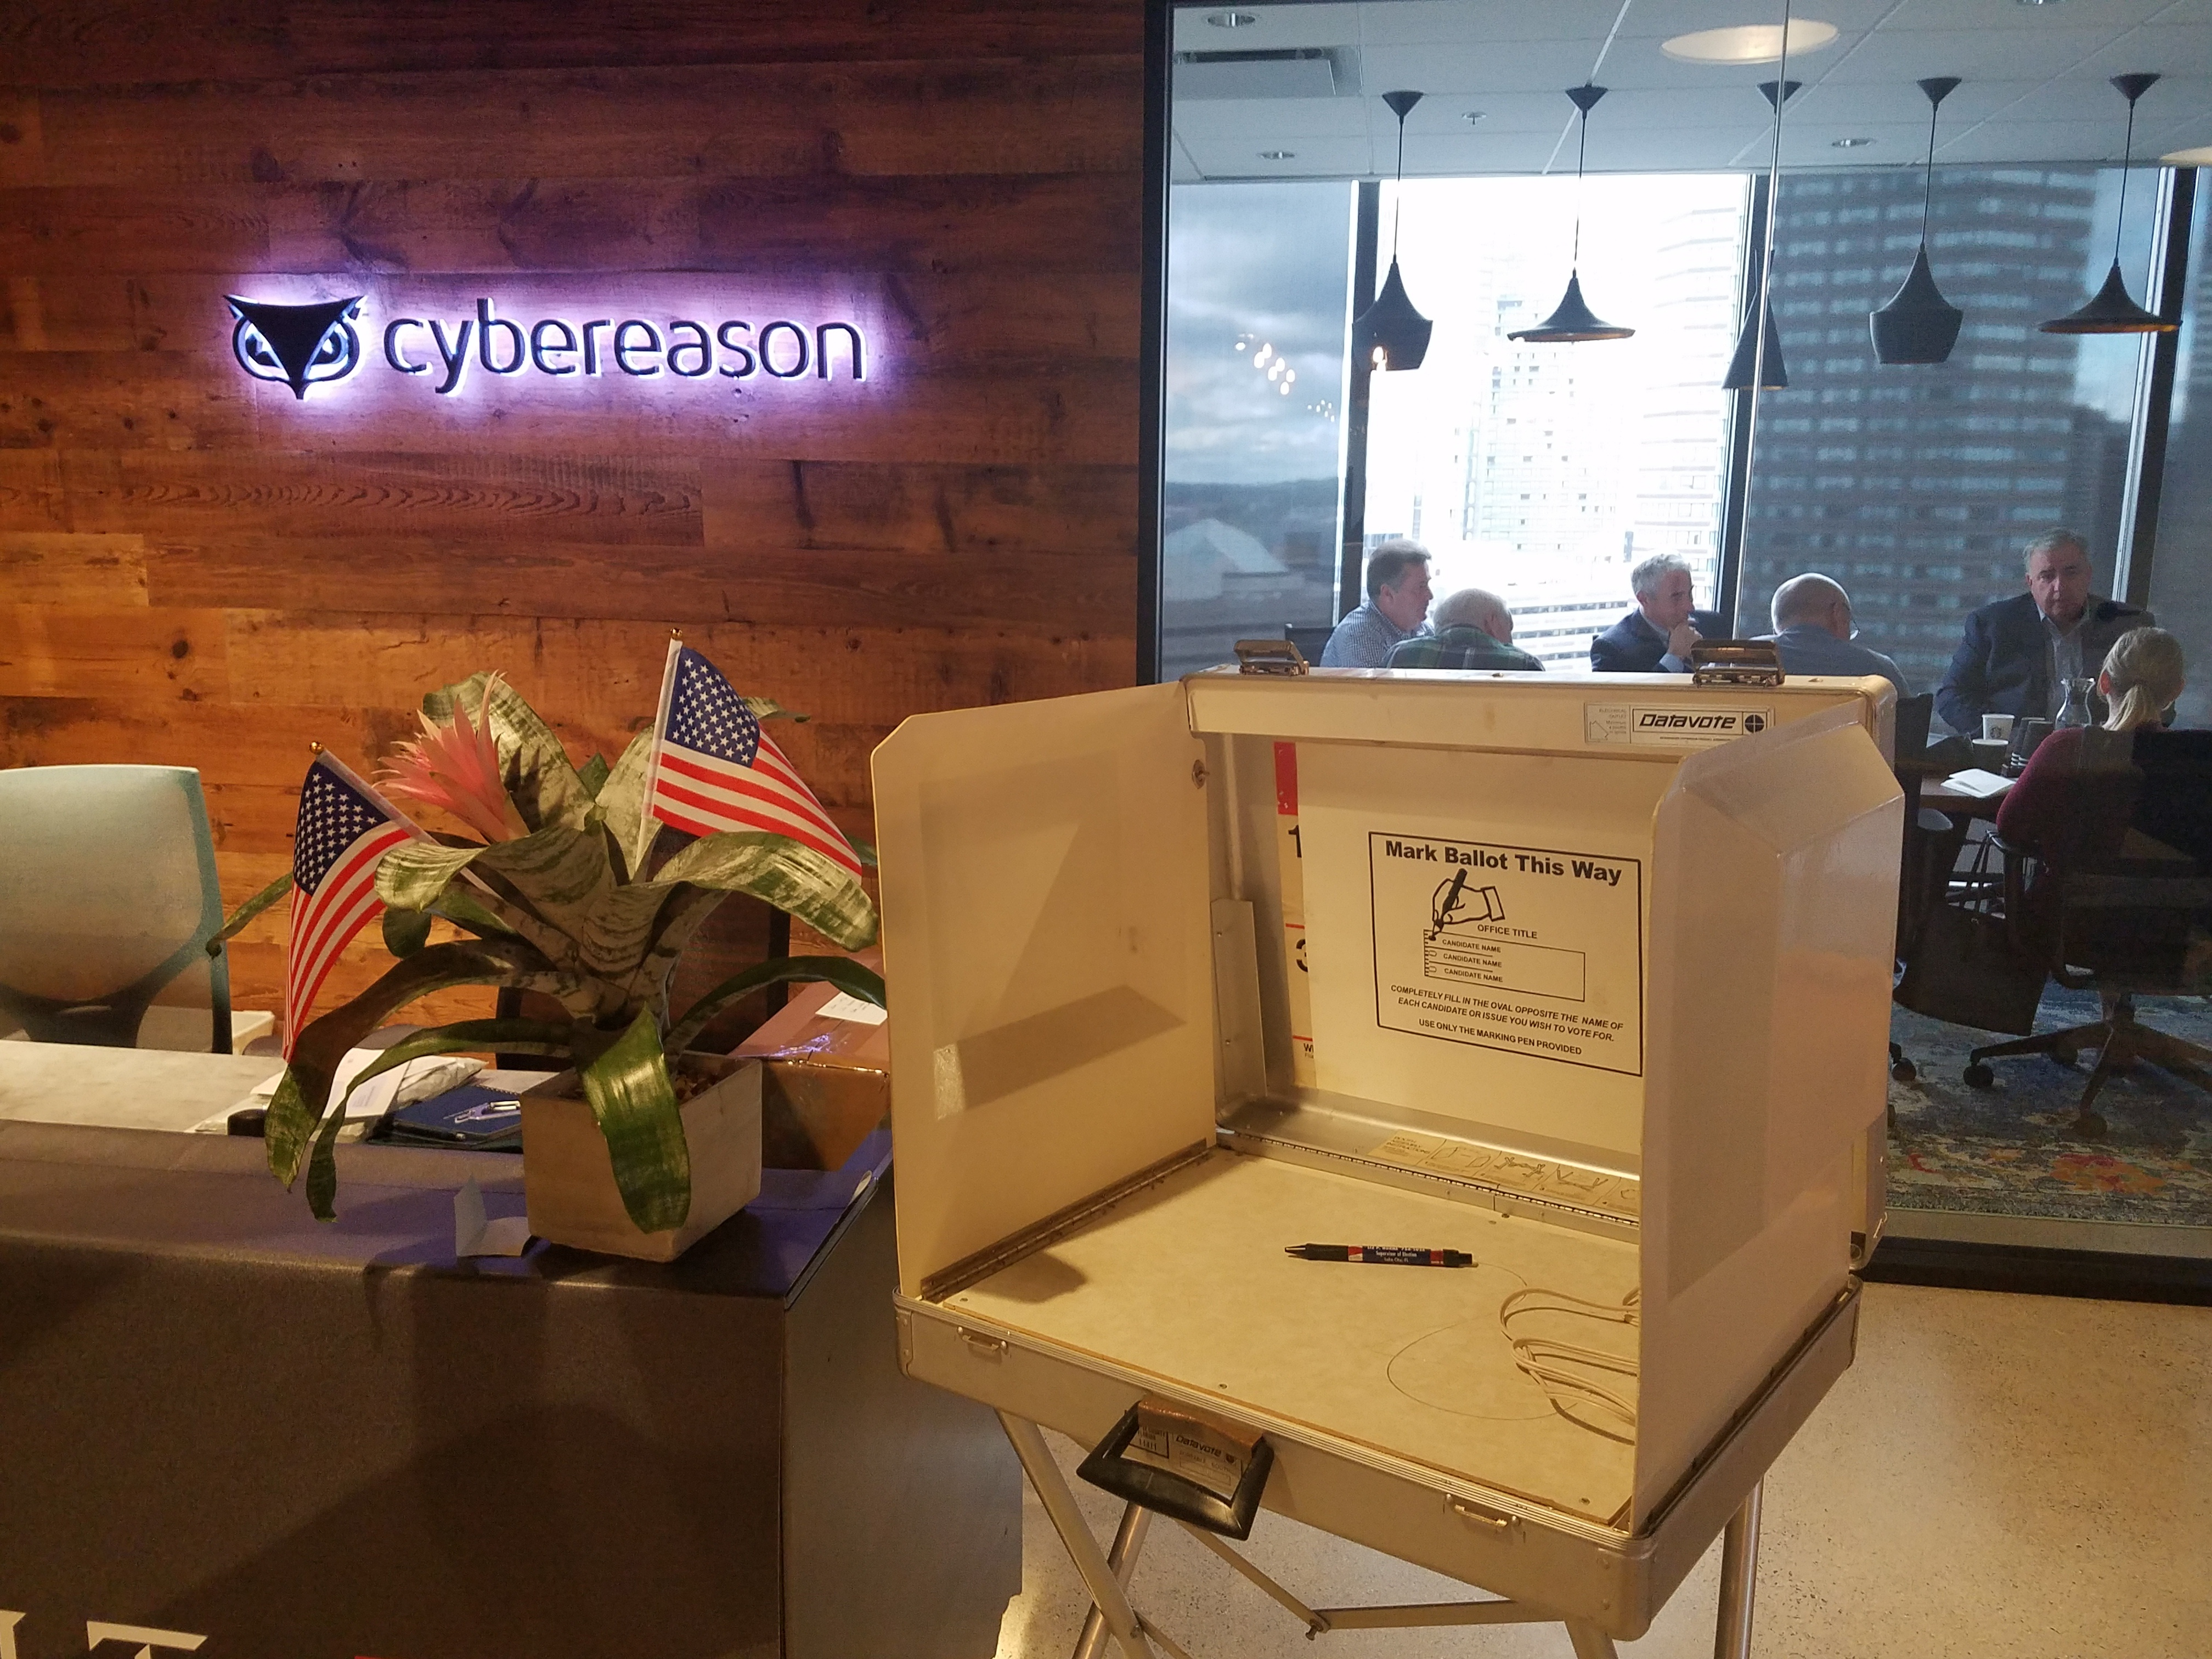 Cybereason election security hack